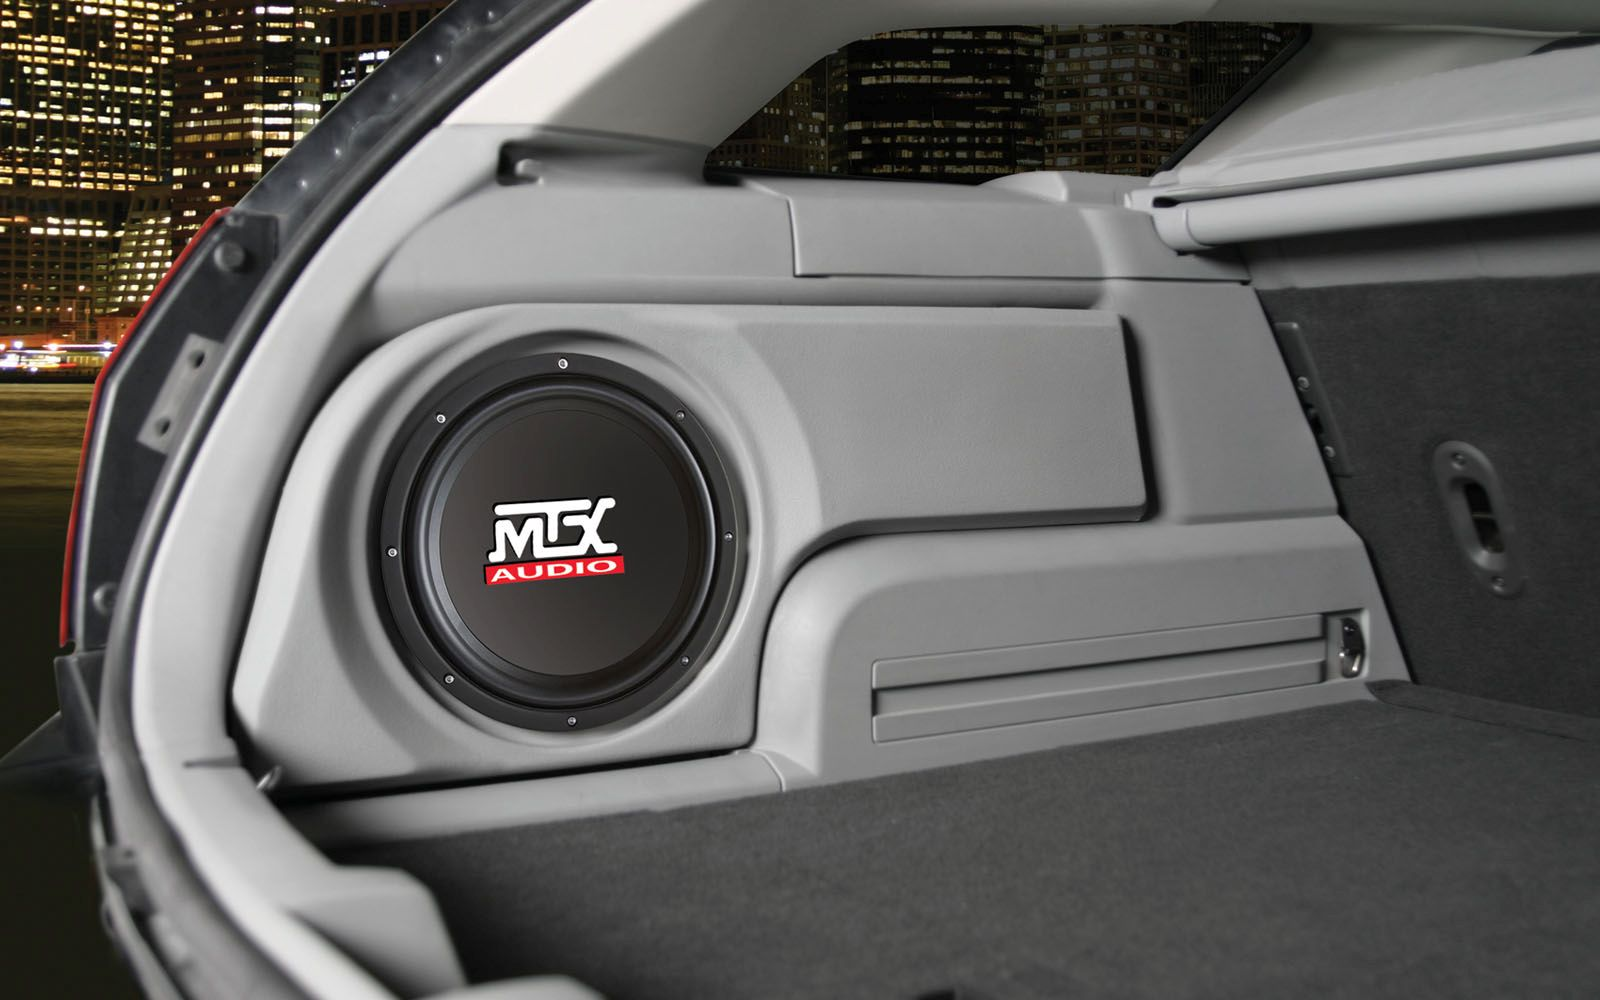 All Weather Tire >> Dodge Magnum 2005-2008 ThunderForm Custom Subwoofer Enclosure | MTX Audio - Serious About Sound®